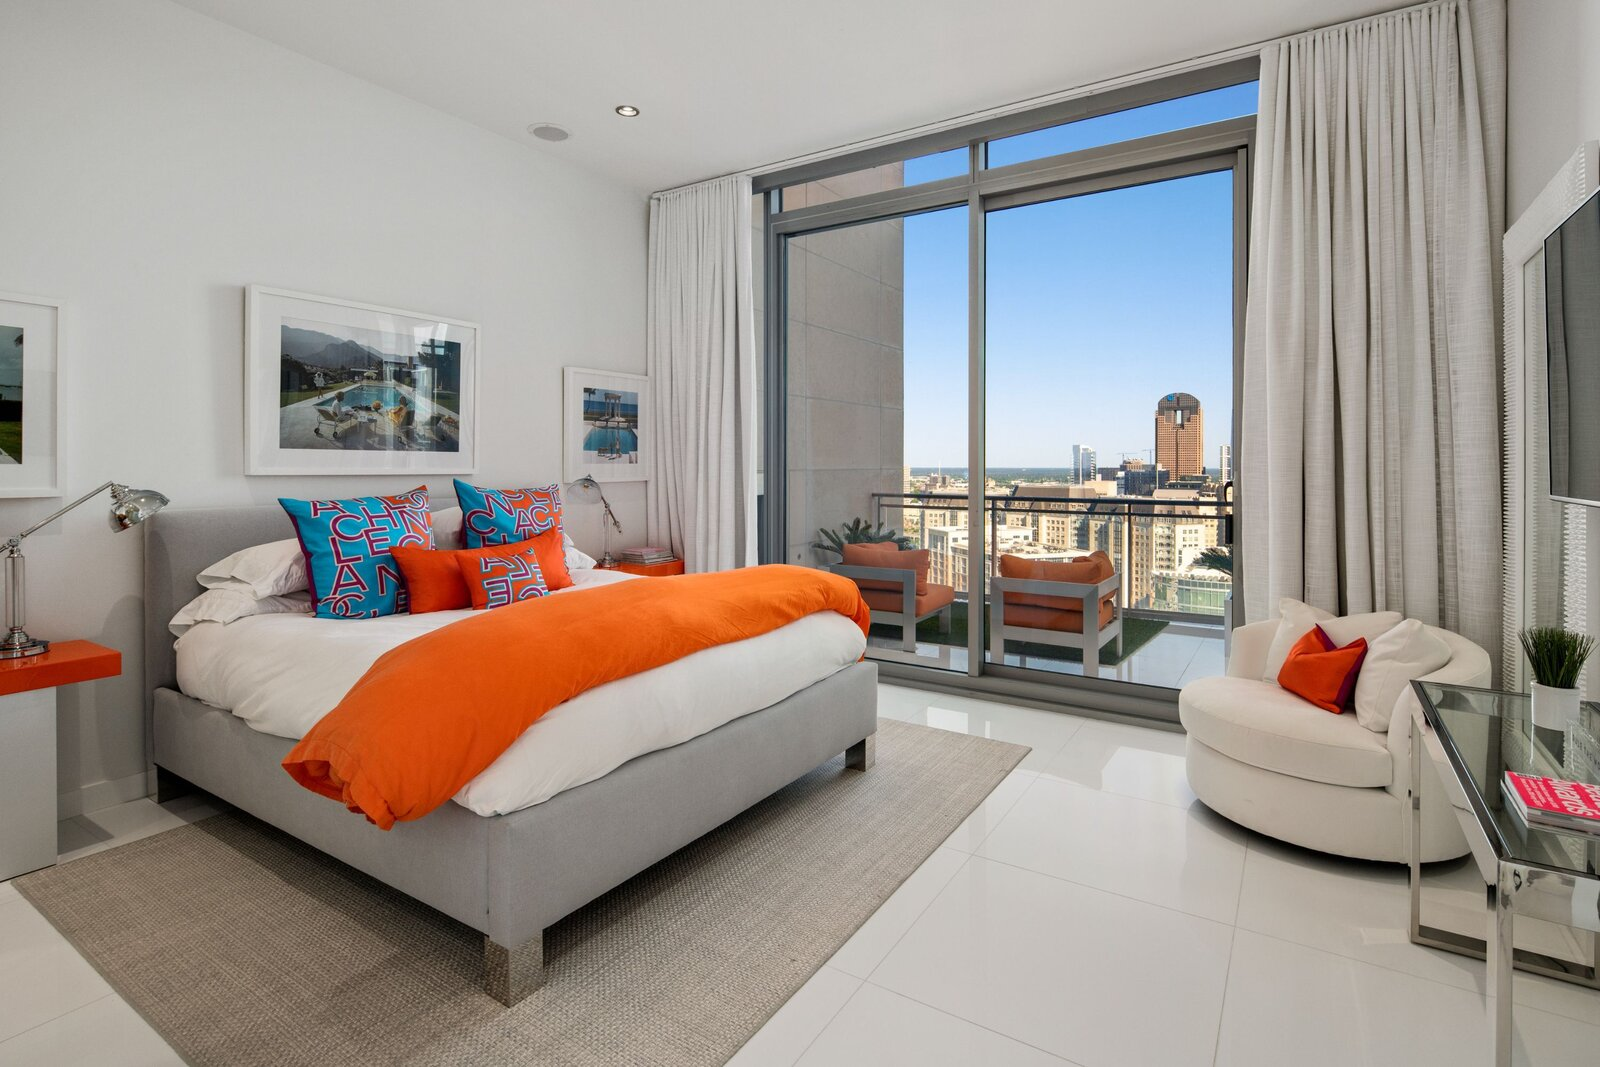 Photo 5 of 10 in An Indoor/Outdoor Penthouse With Downtown Dallas Views Wants $5.7M